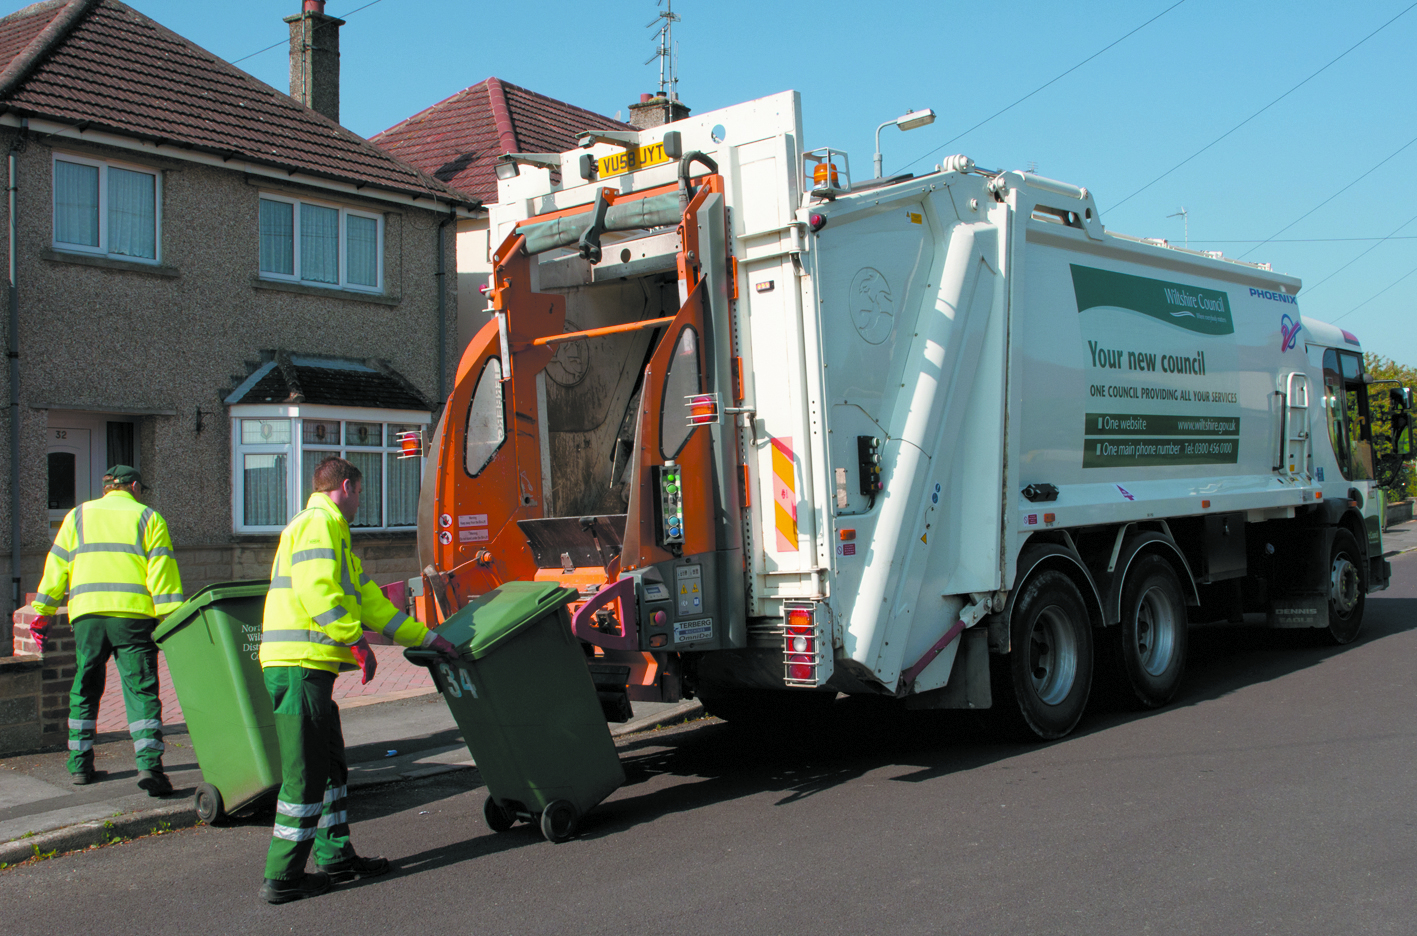 Green bin cost labelled a 'stealth tax'